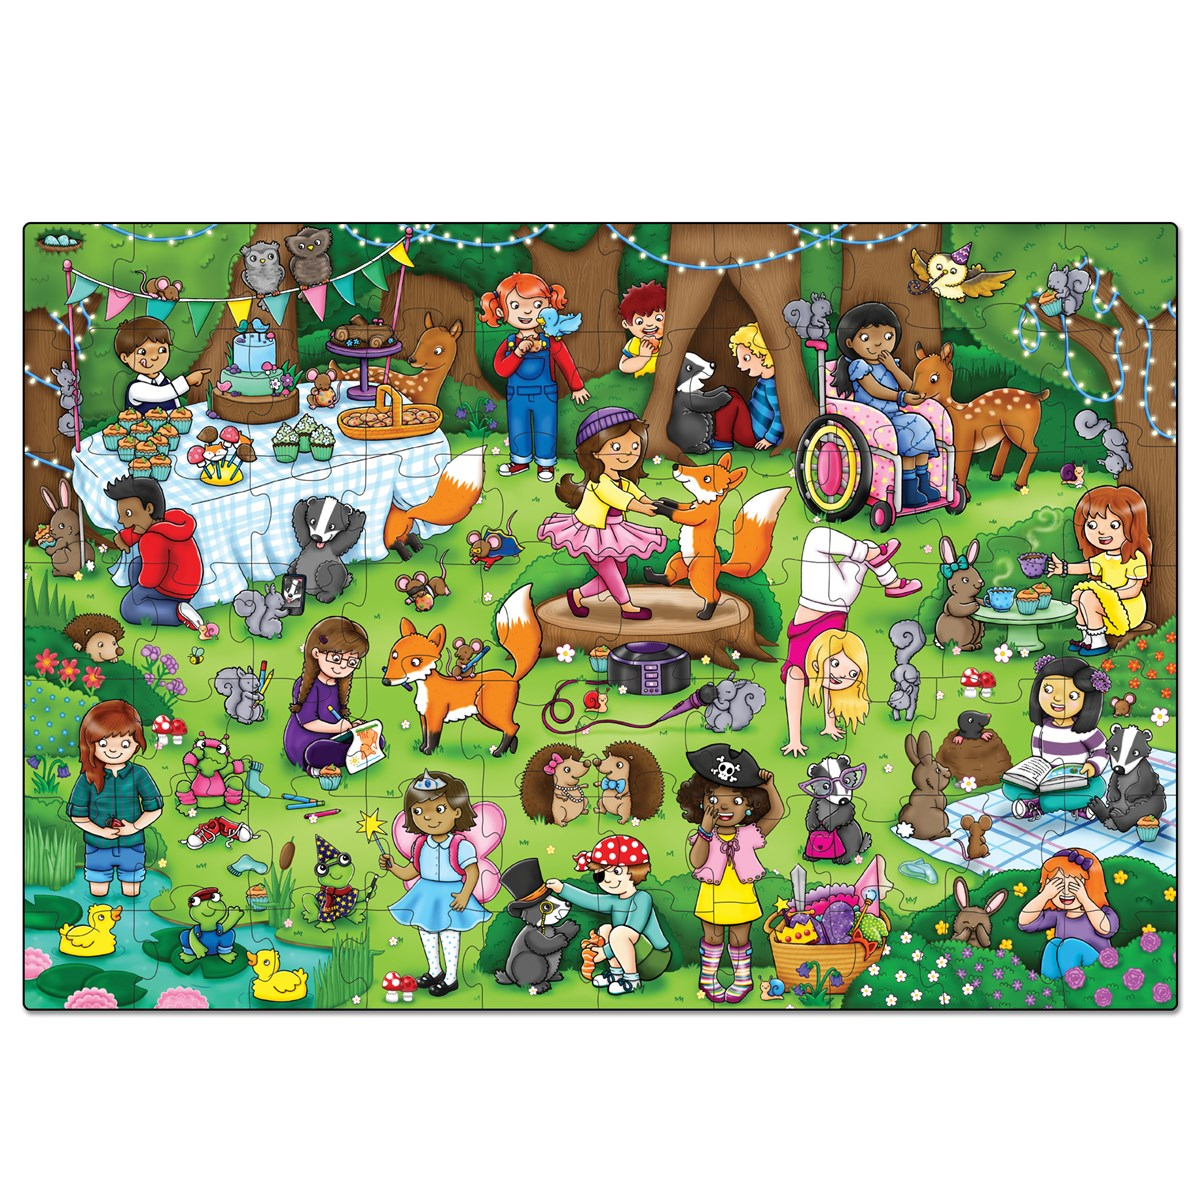 Orchard toys woodland party jigsaw puzzle nimble fingers orchard toys woodland party jigsaw puzzle gumiabroncs Image collections